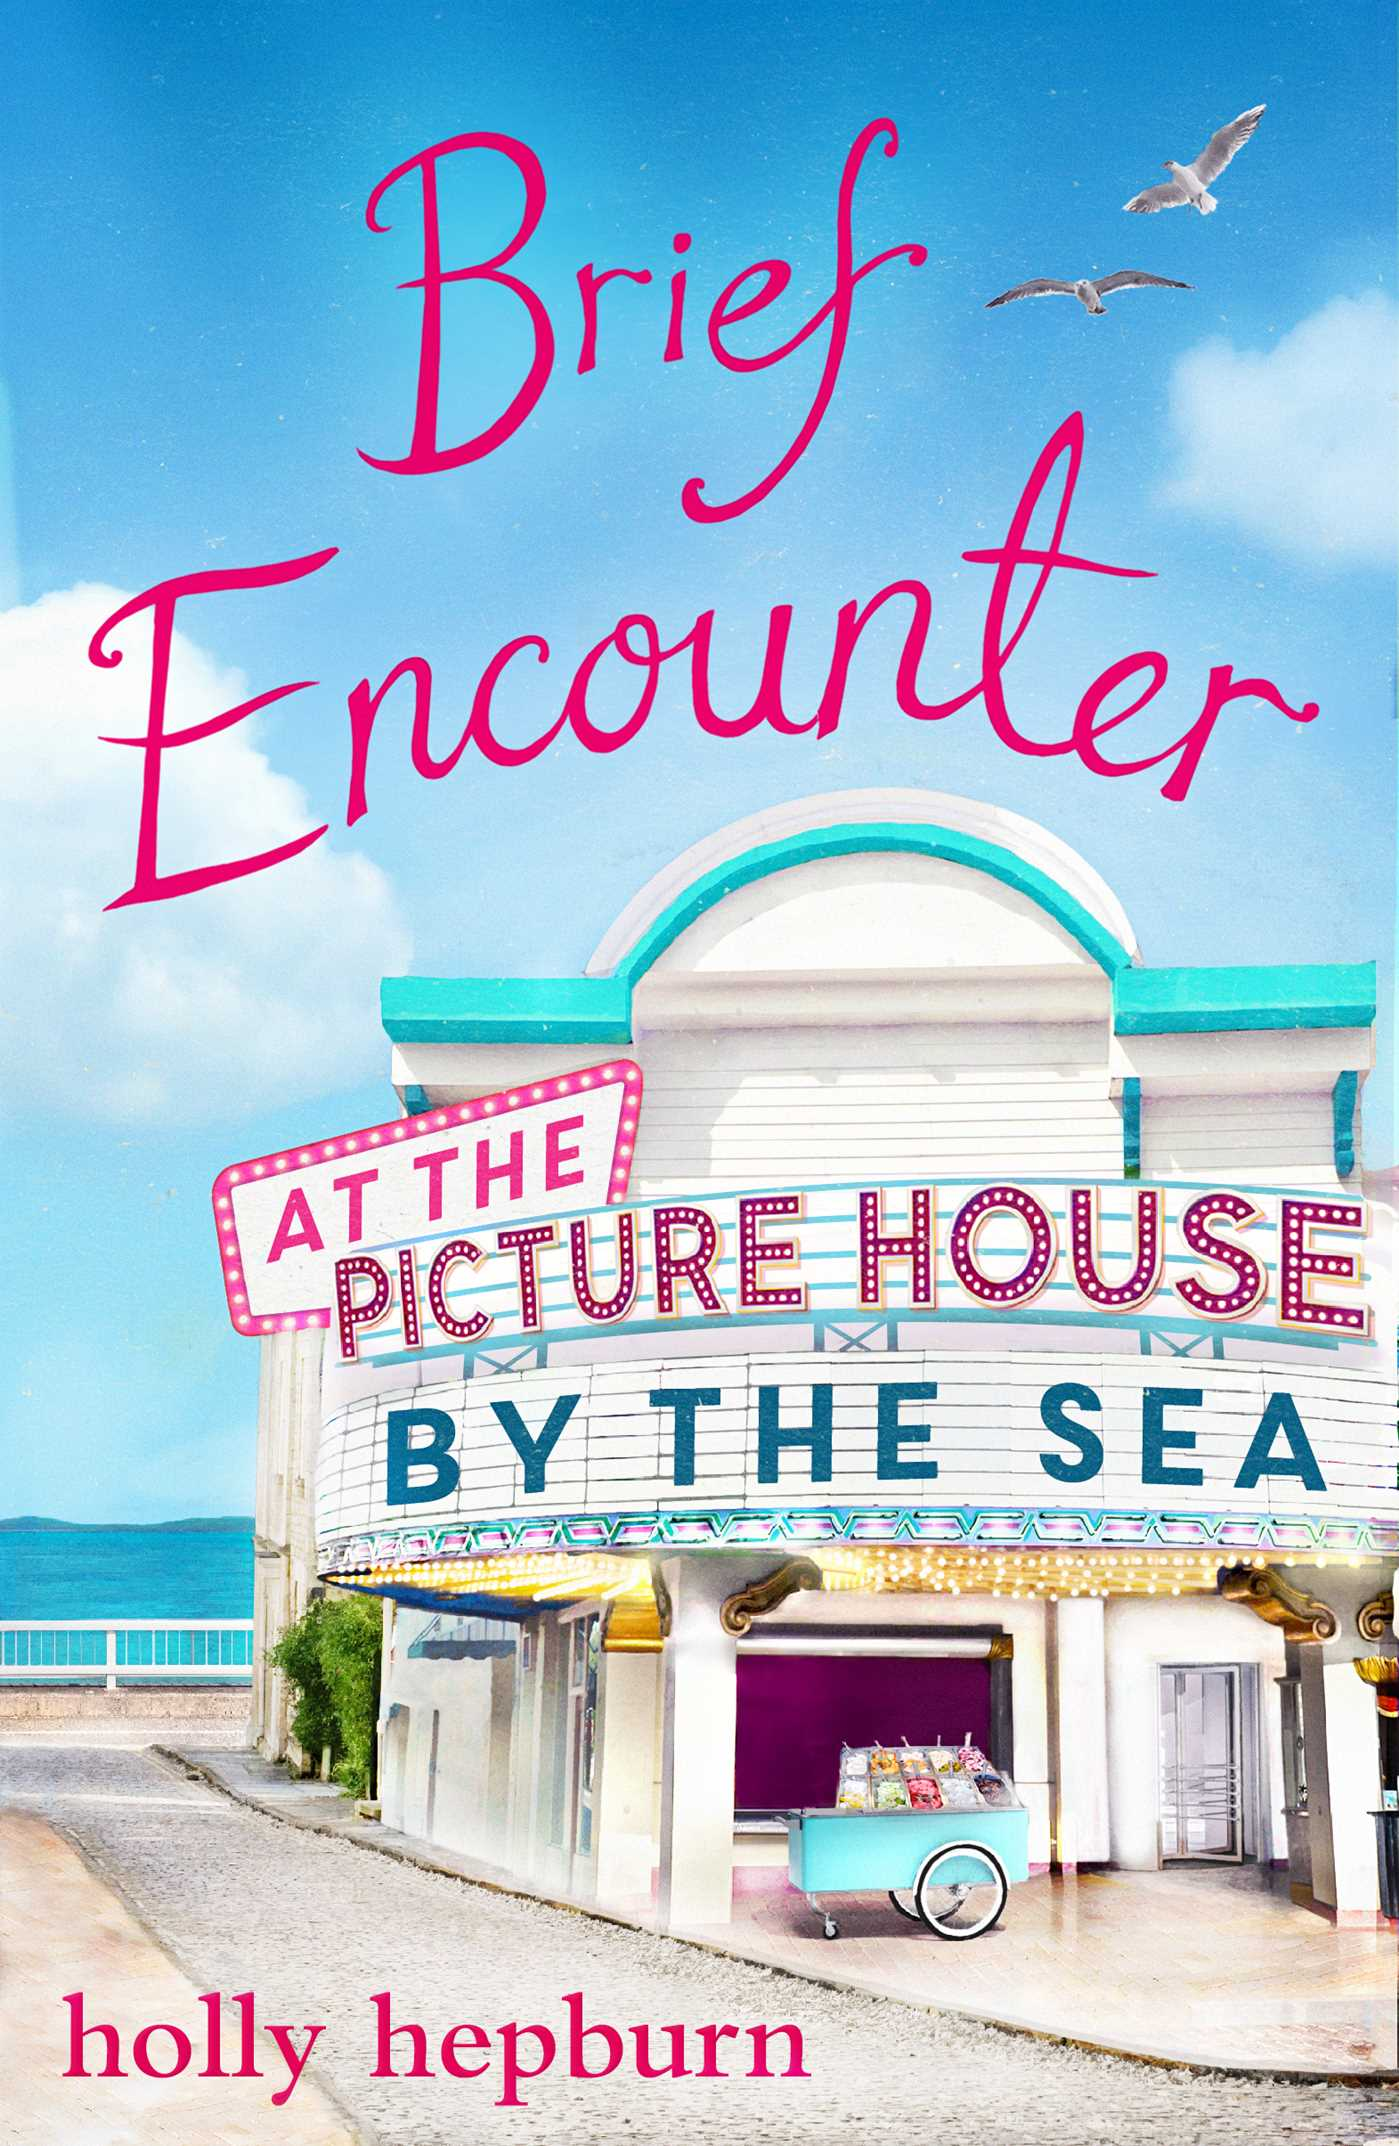 Brief encounter at the picture house by the sea 9781471161674 hr